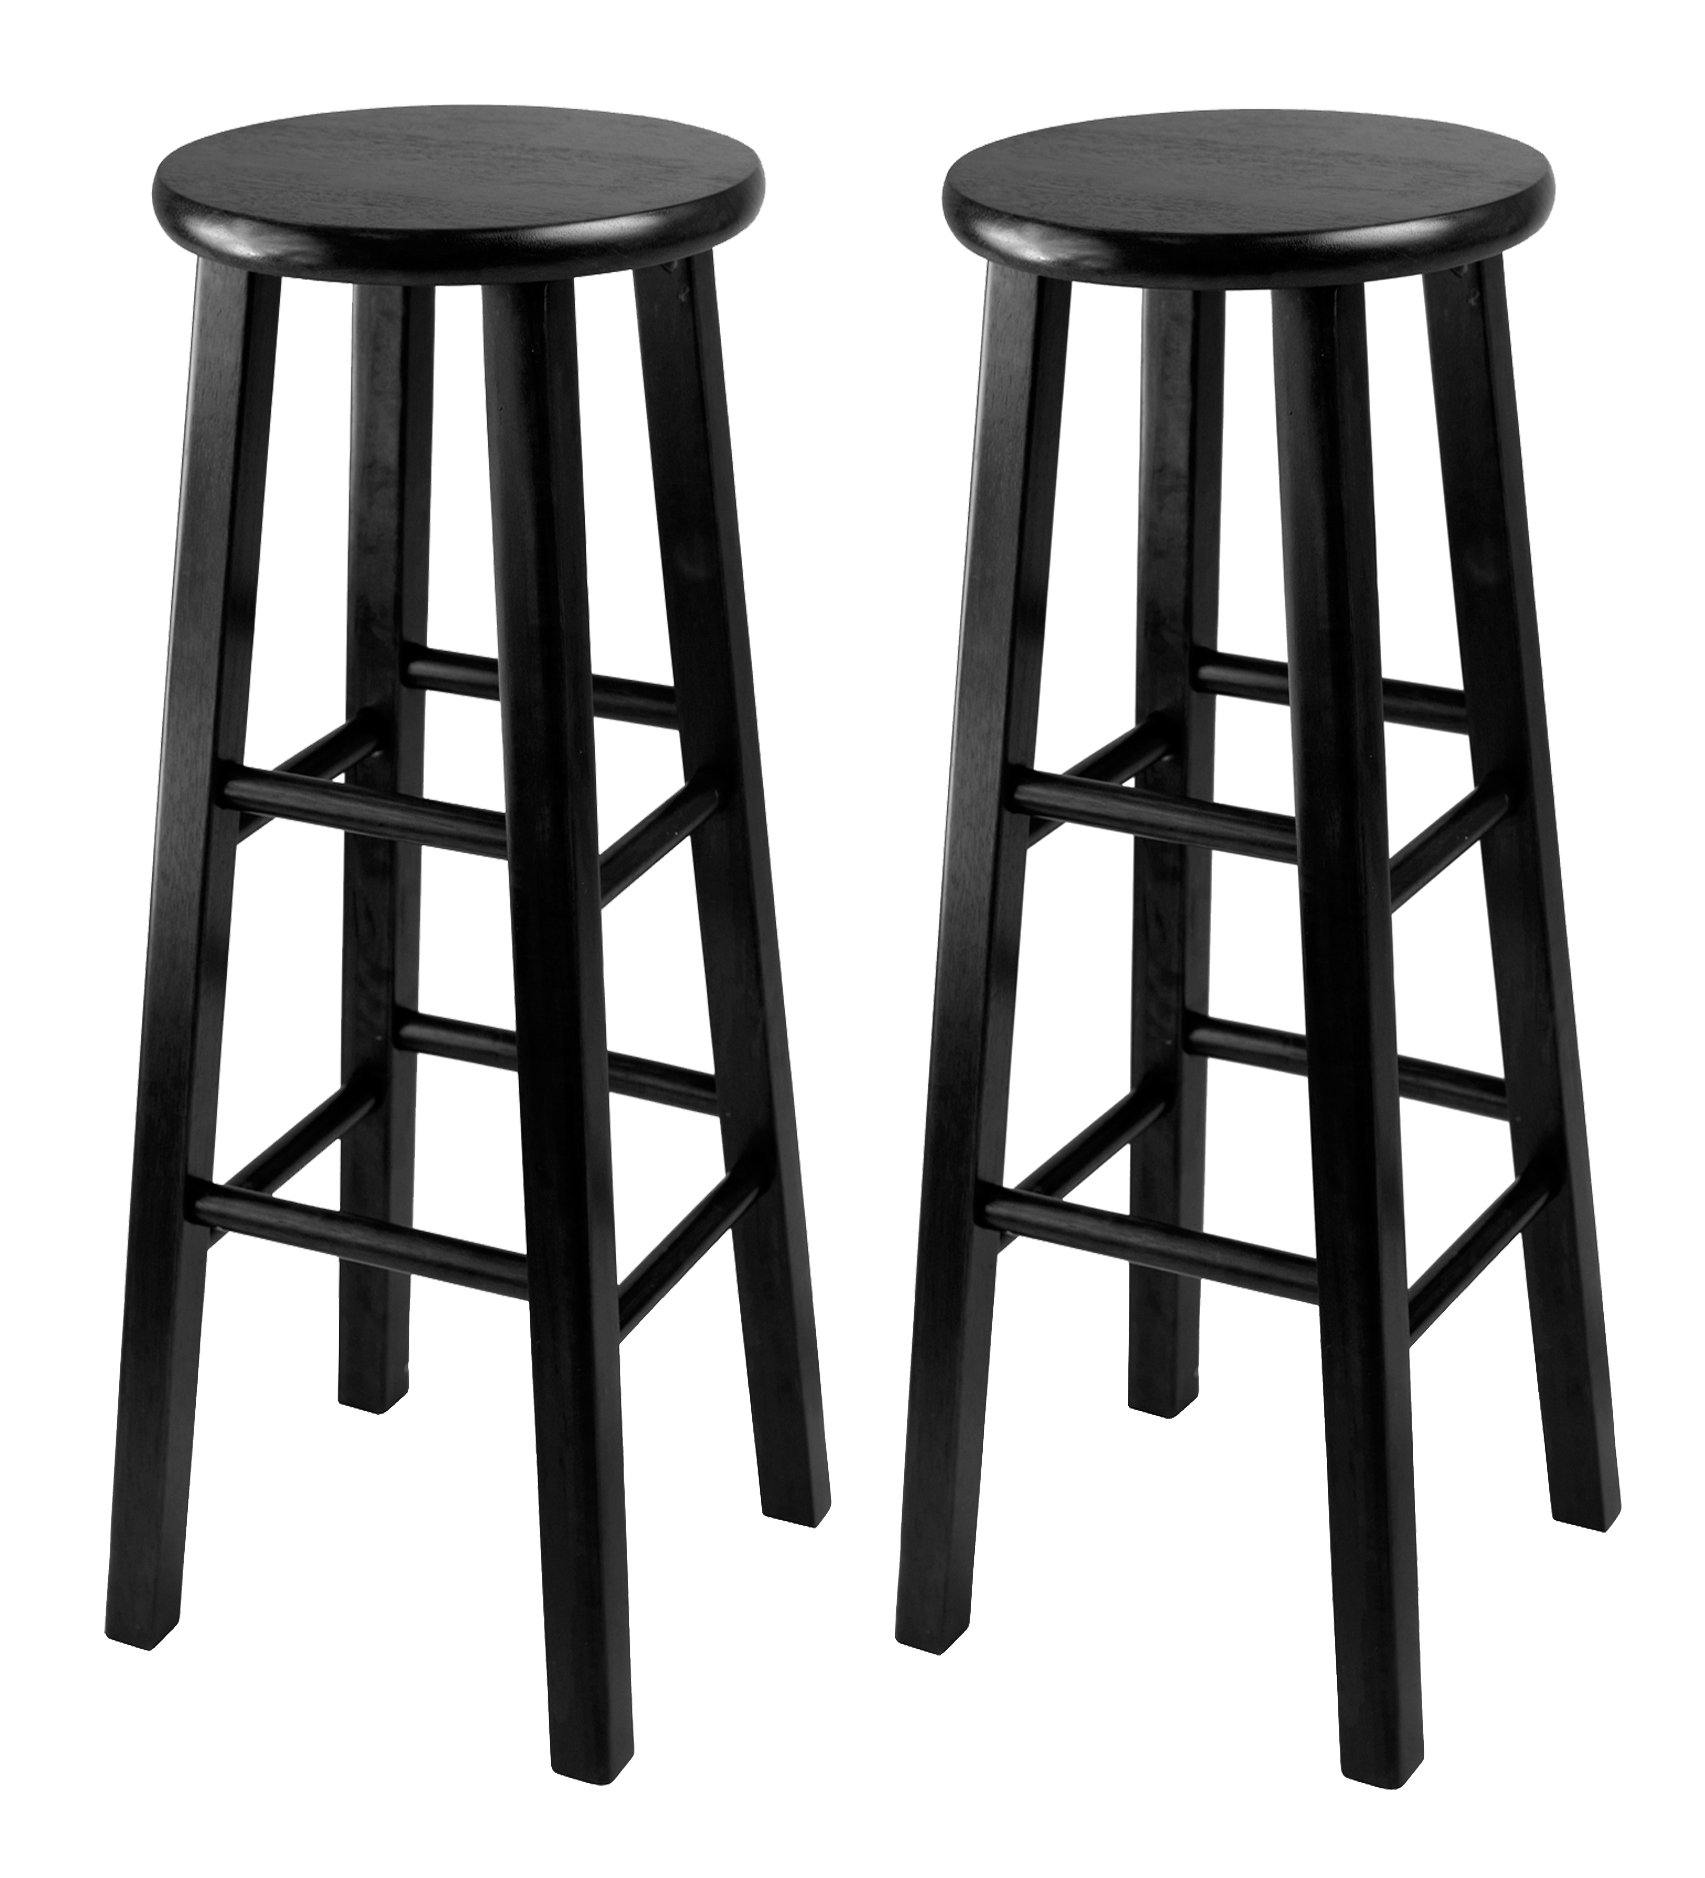 Pacey Bar Stools, 2-Pc Set, Black - My USA Furniture